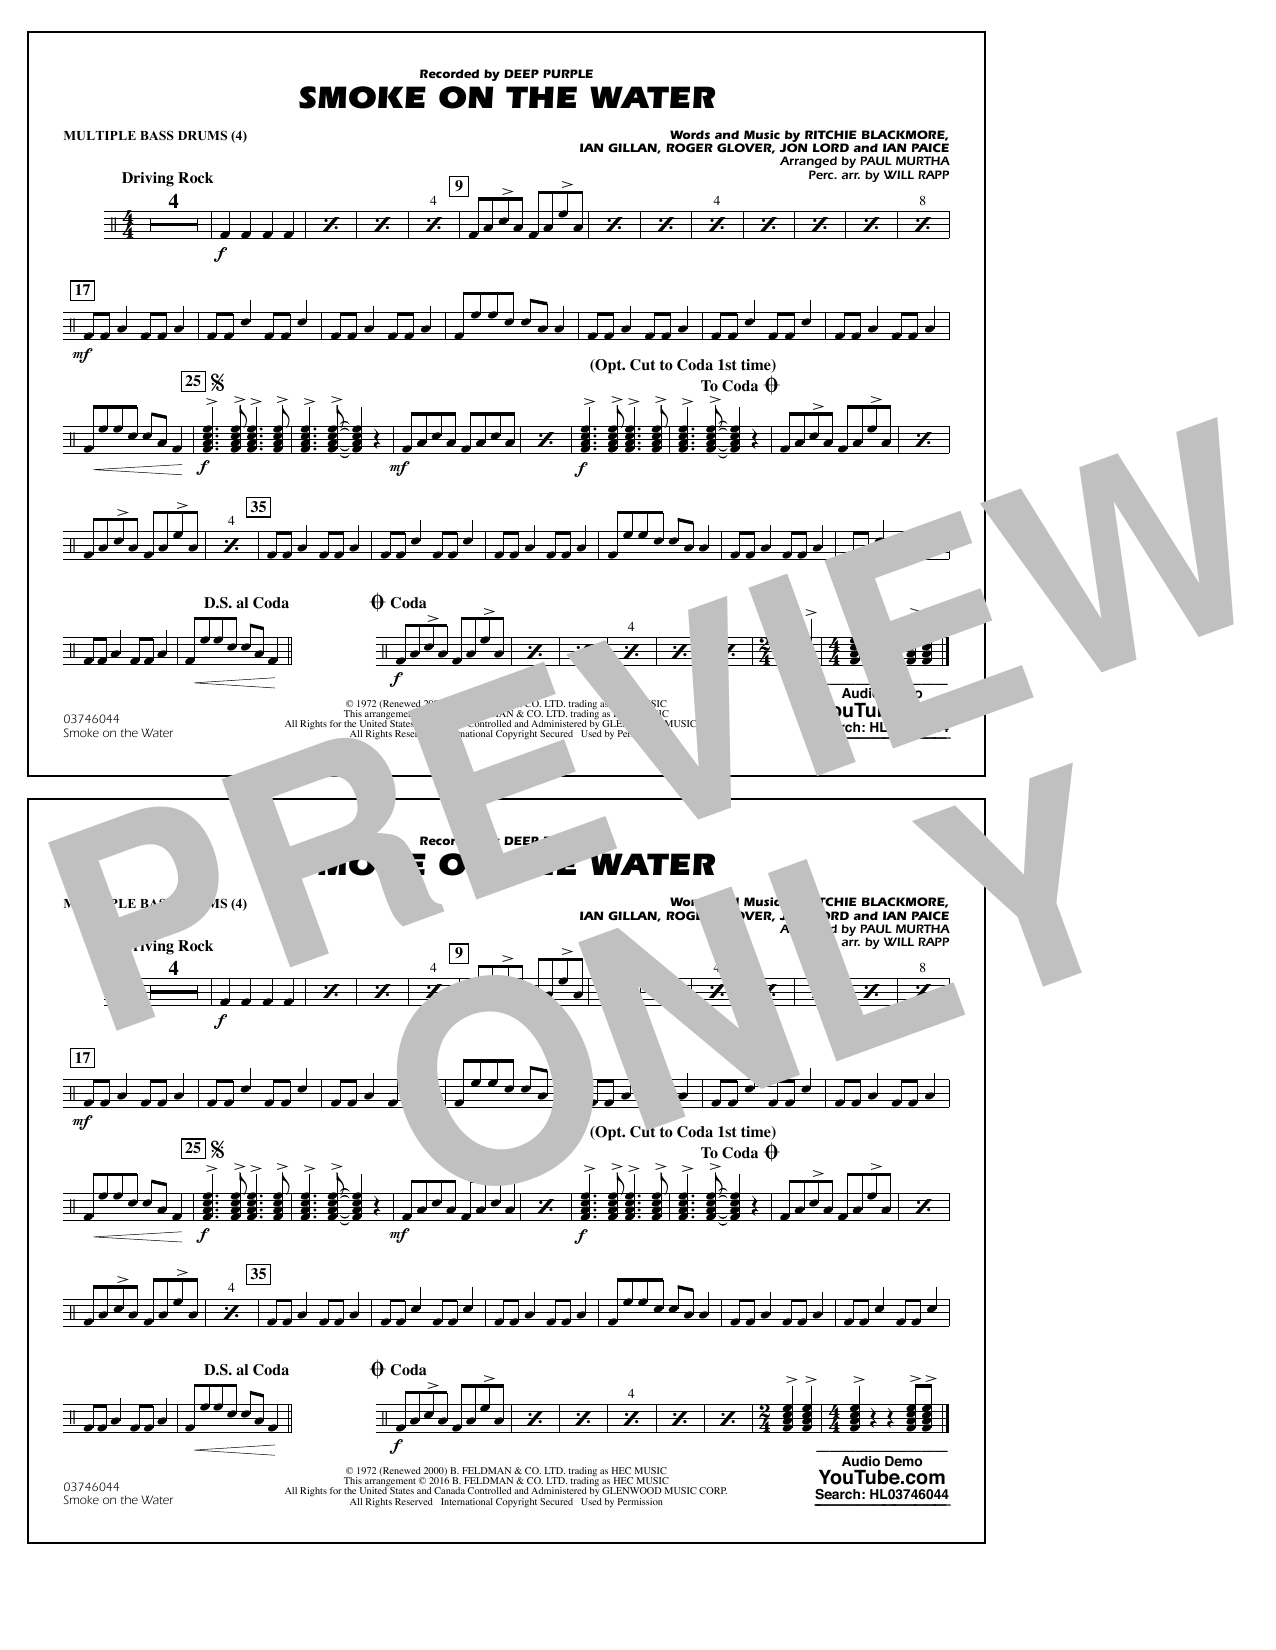 Paul Murtha Smoke on the Water - Multiple Bass Drums sheet music notes and chords. Download Printable PDF.